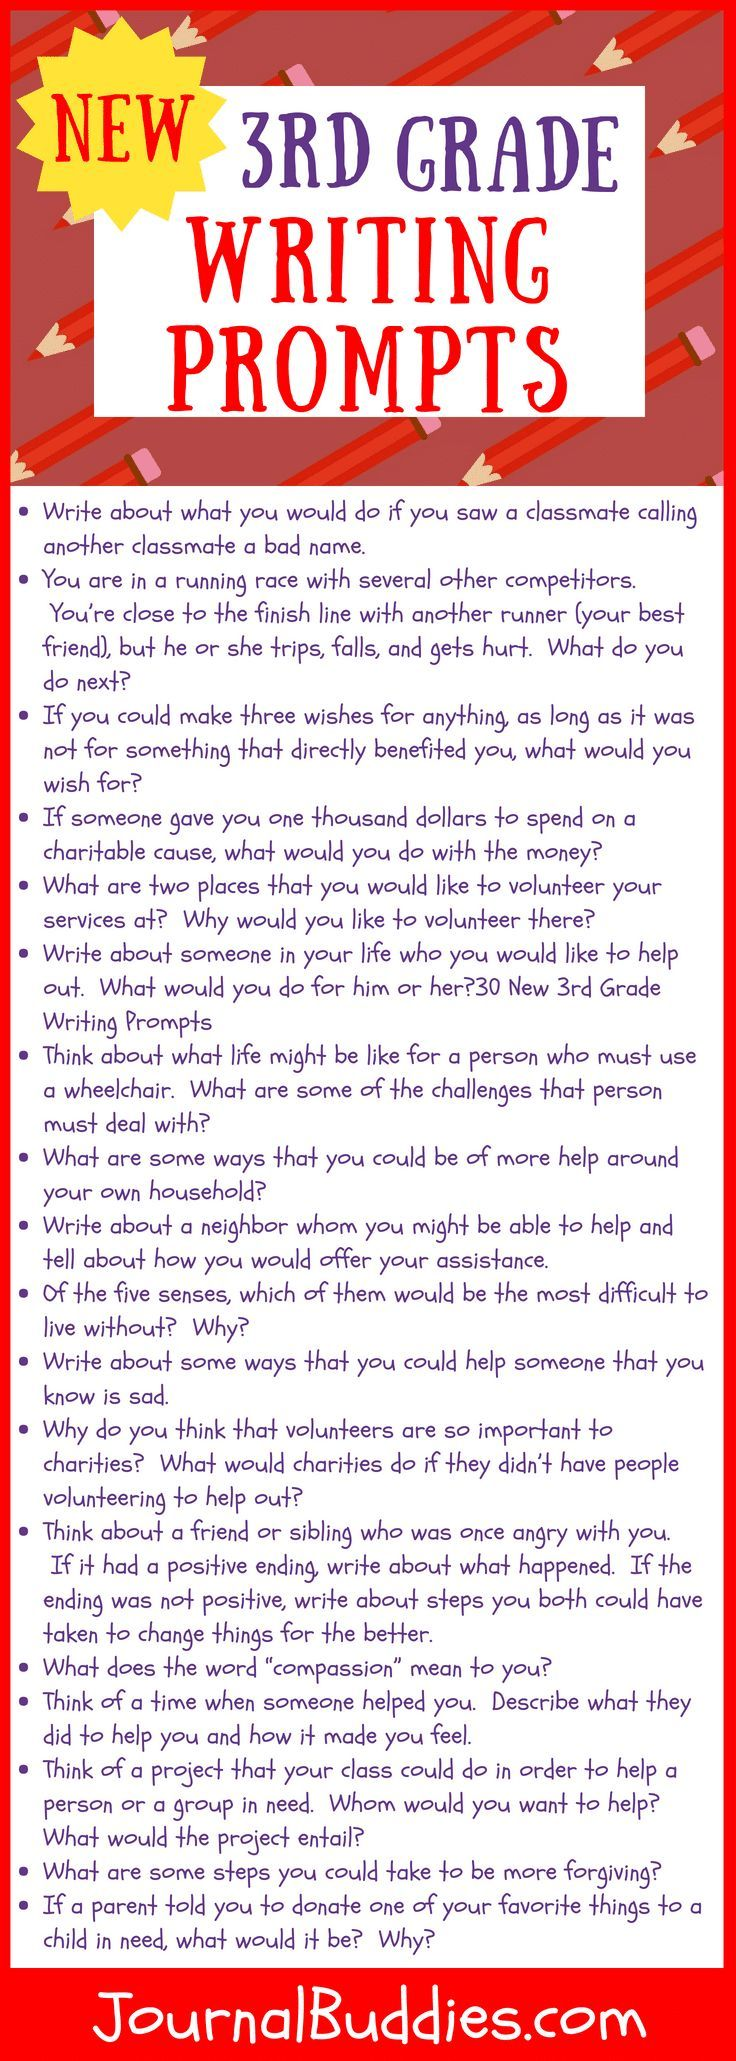 3rd Grade Writing Prompts 3rd Grade Writing 3rd Grade Writing Prompts Writing Prompts For Kids